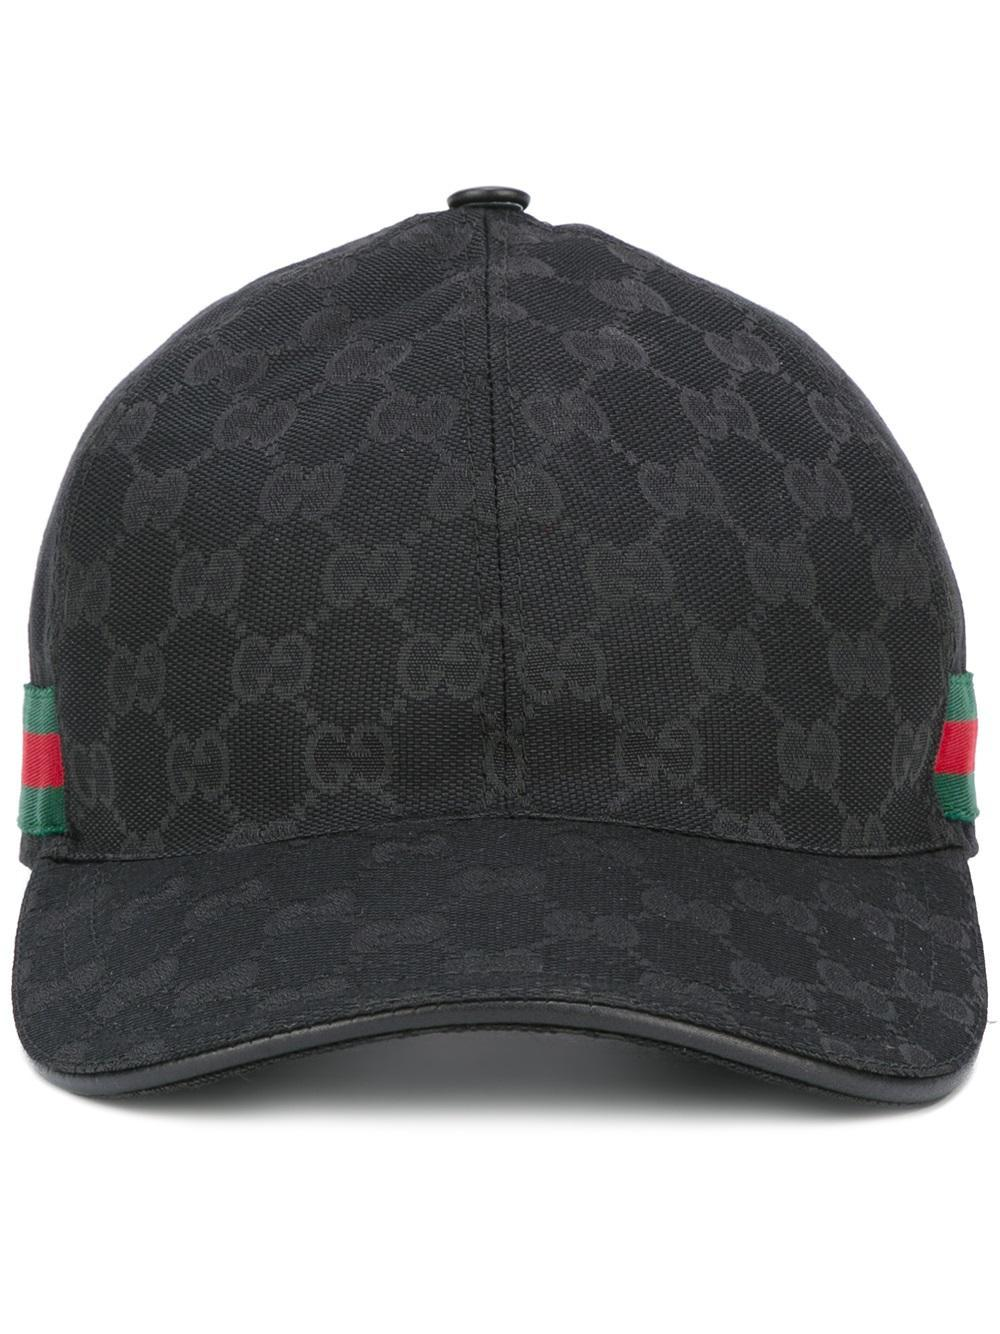 gucci original gg web stripe baseball cap in black for men. Black Bedroom Furniture Sets. Home Design Ideas